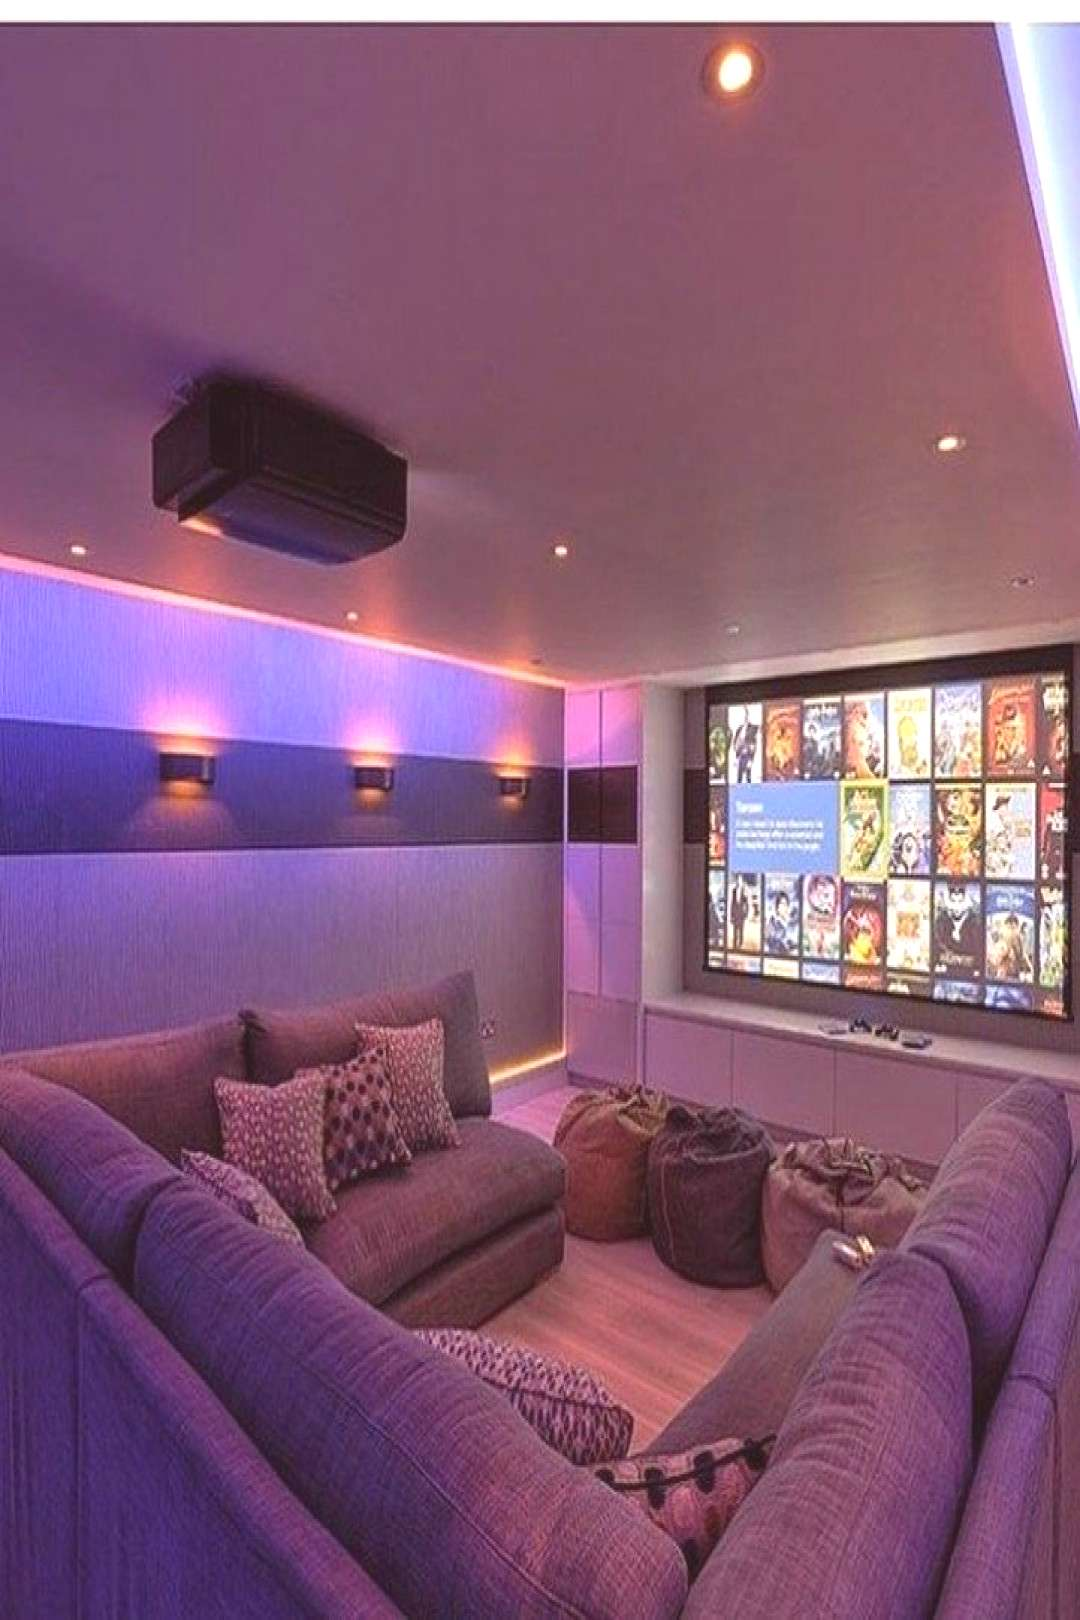 40 Luxury Home Theater Room Inspirations - Since electronic devices such as mobile phones, tablets